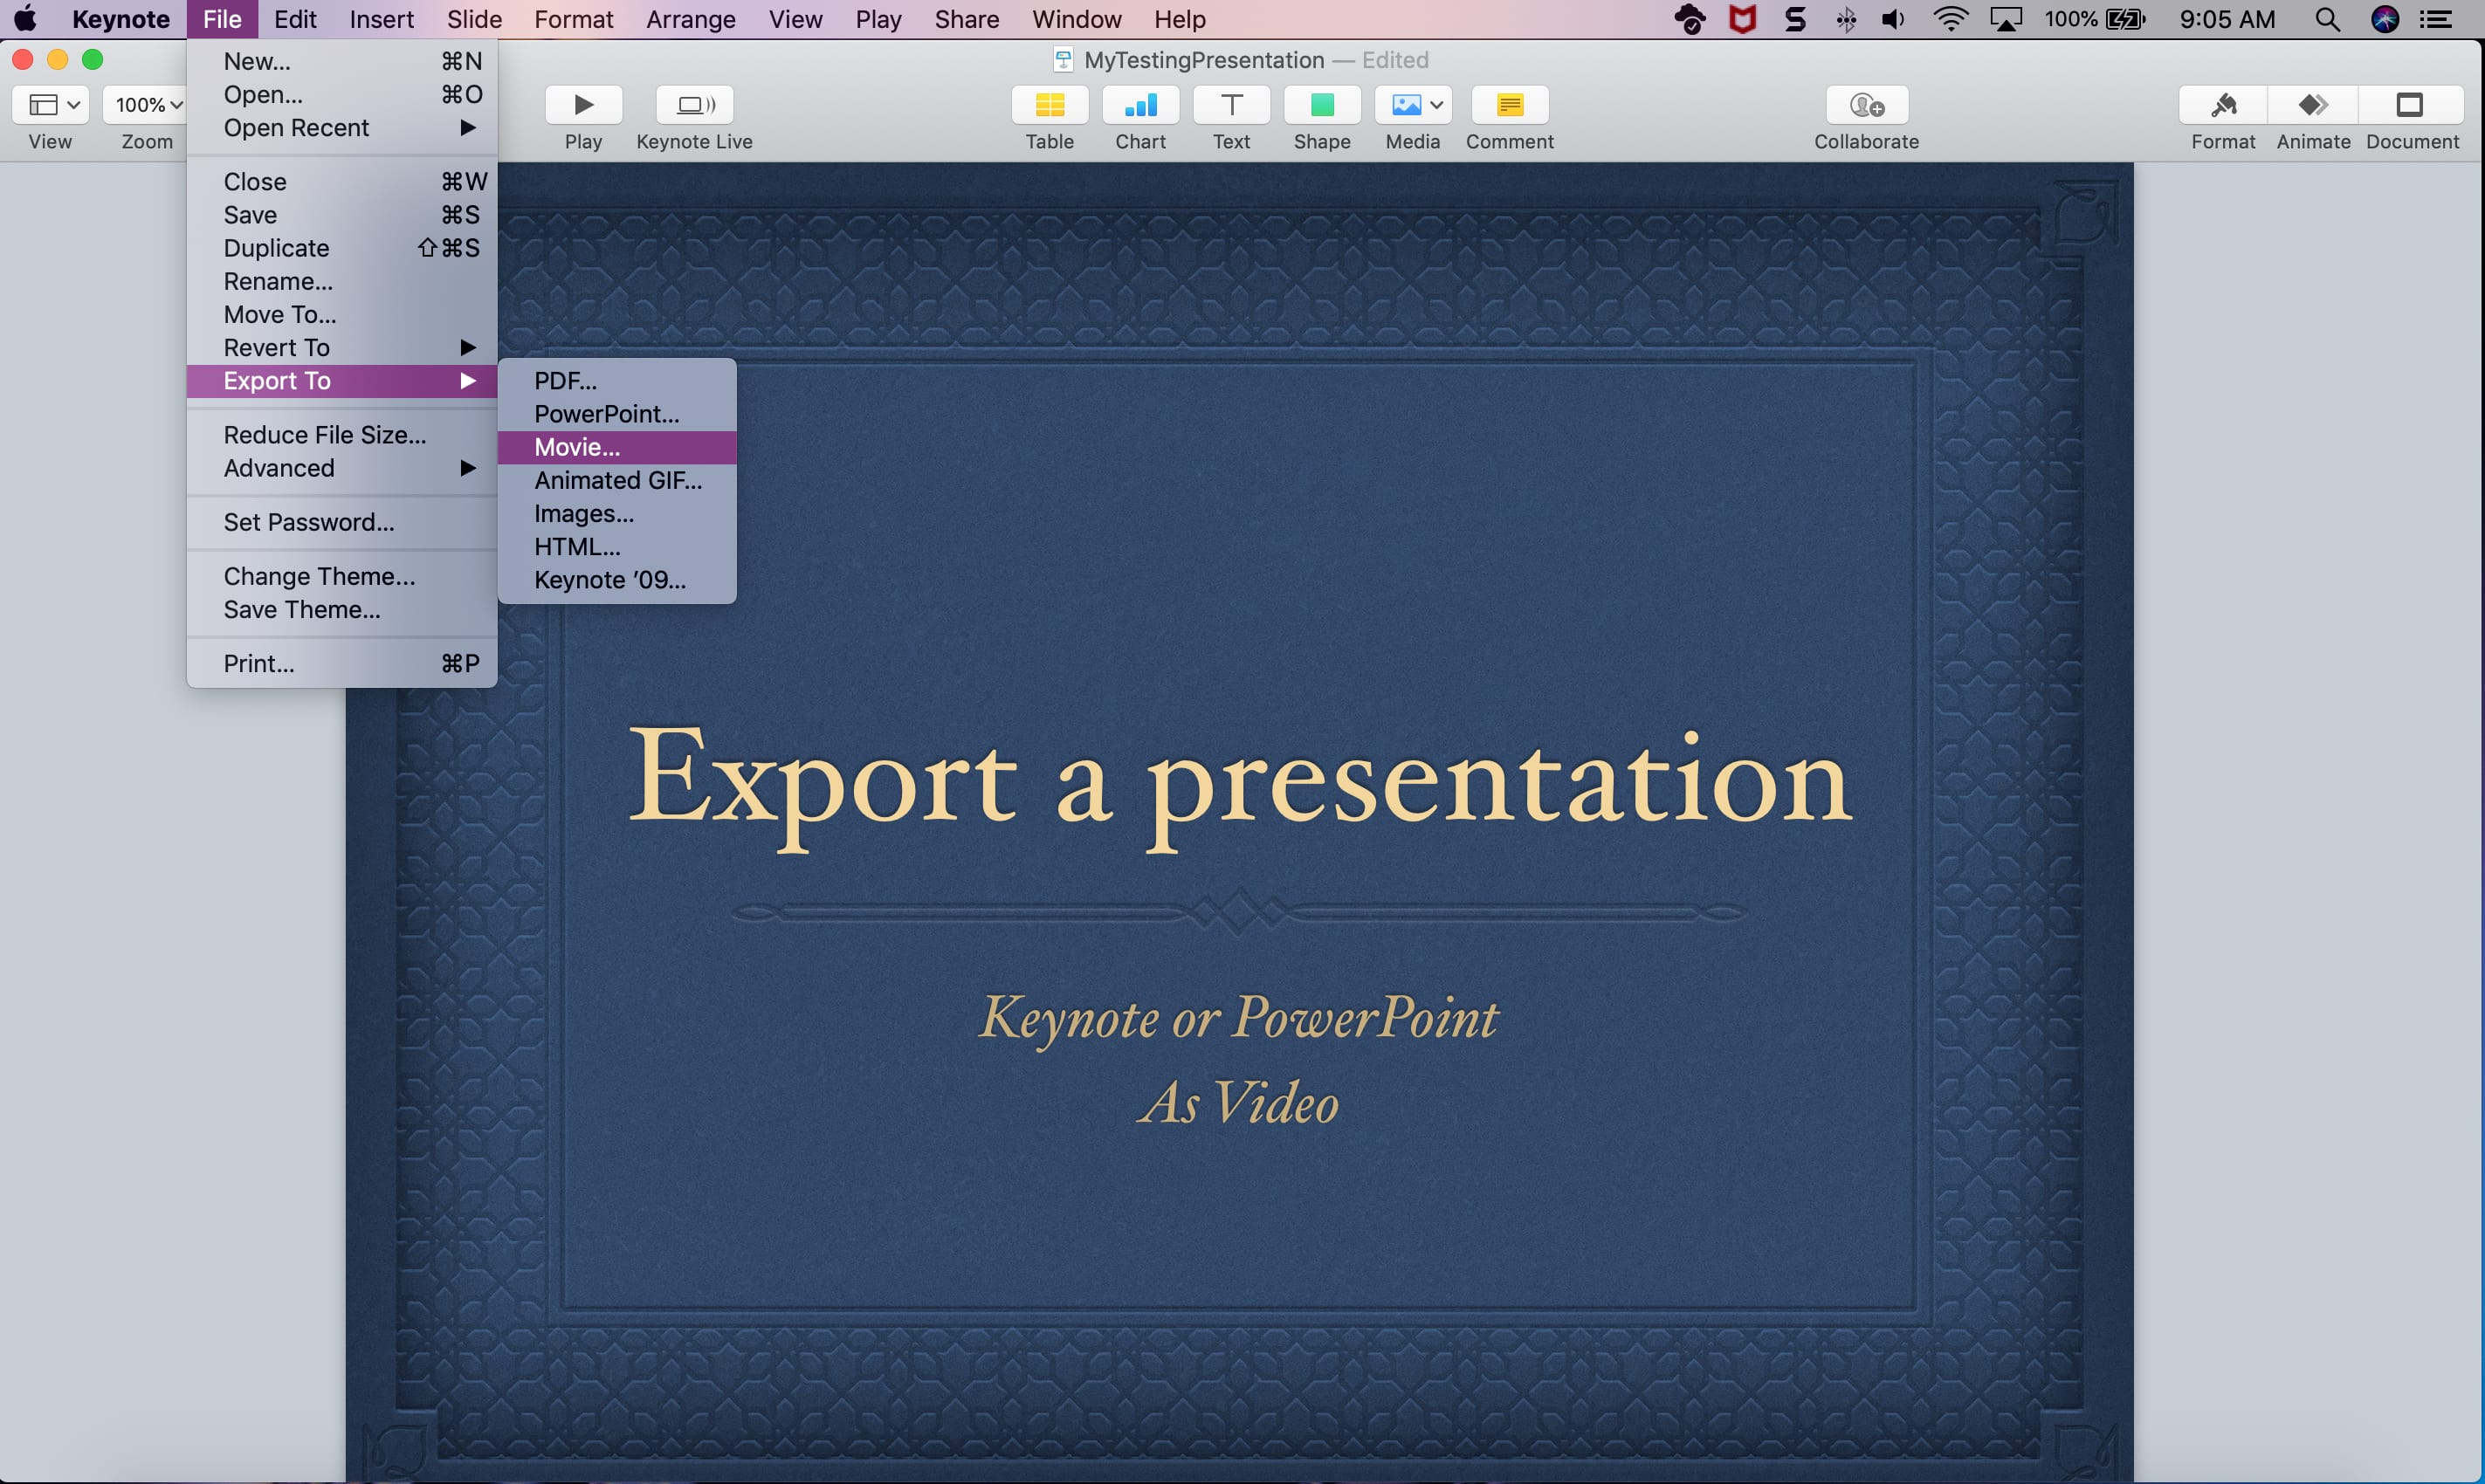 How to export a presentation in Keynote or PowerPoint as a video